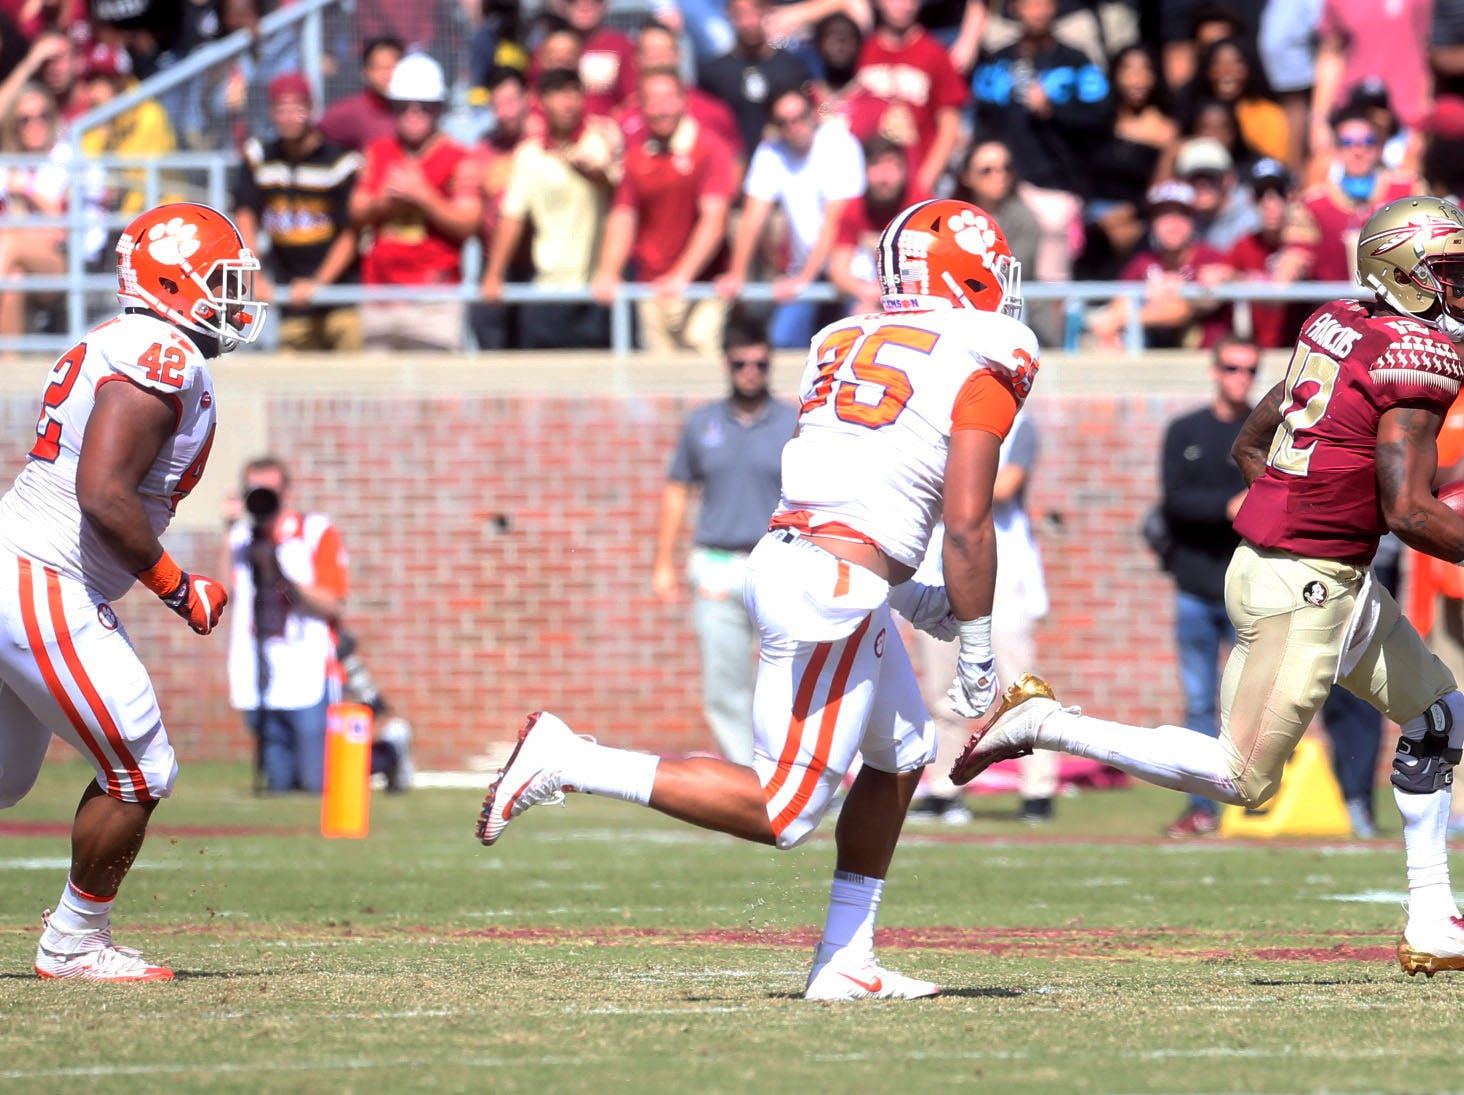 The Florida State Seminoles take on the Clemson Tigers in college football at Doak Campbell Stadium on Saturday, Oct. 27, 2018.